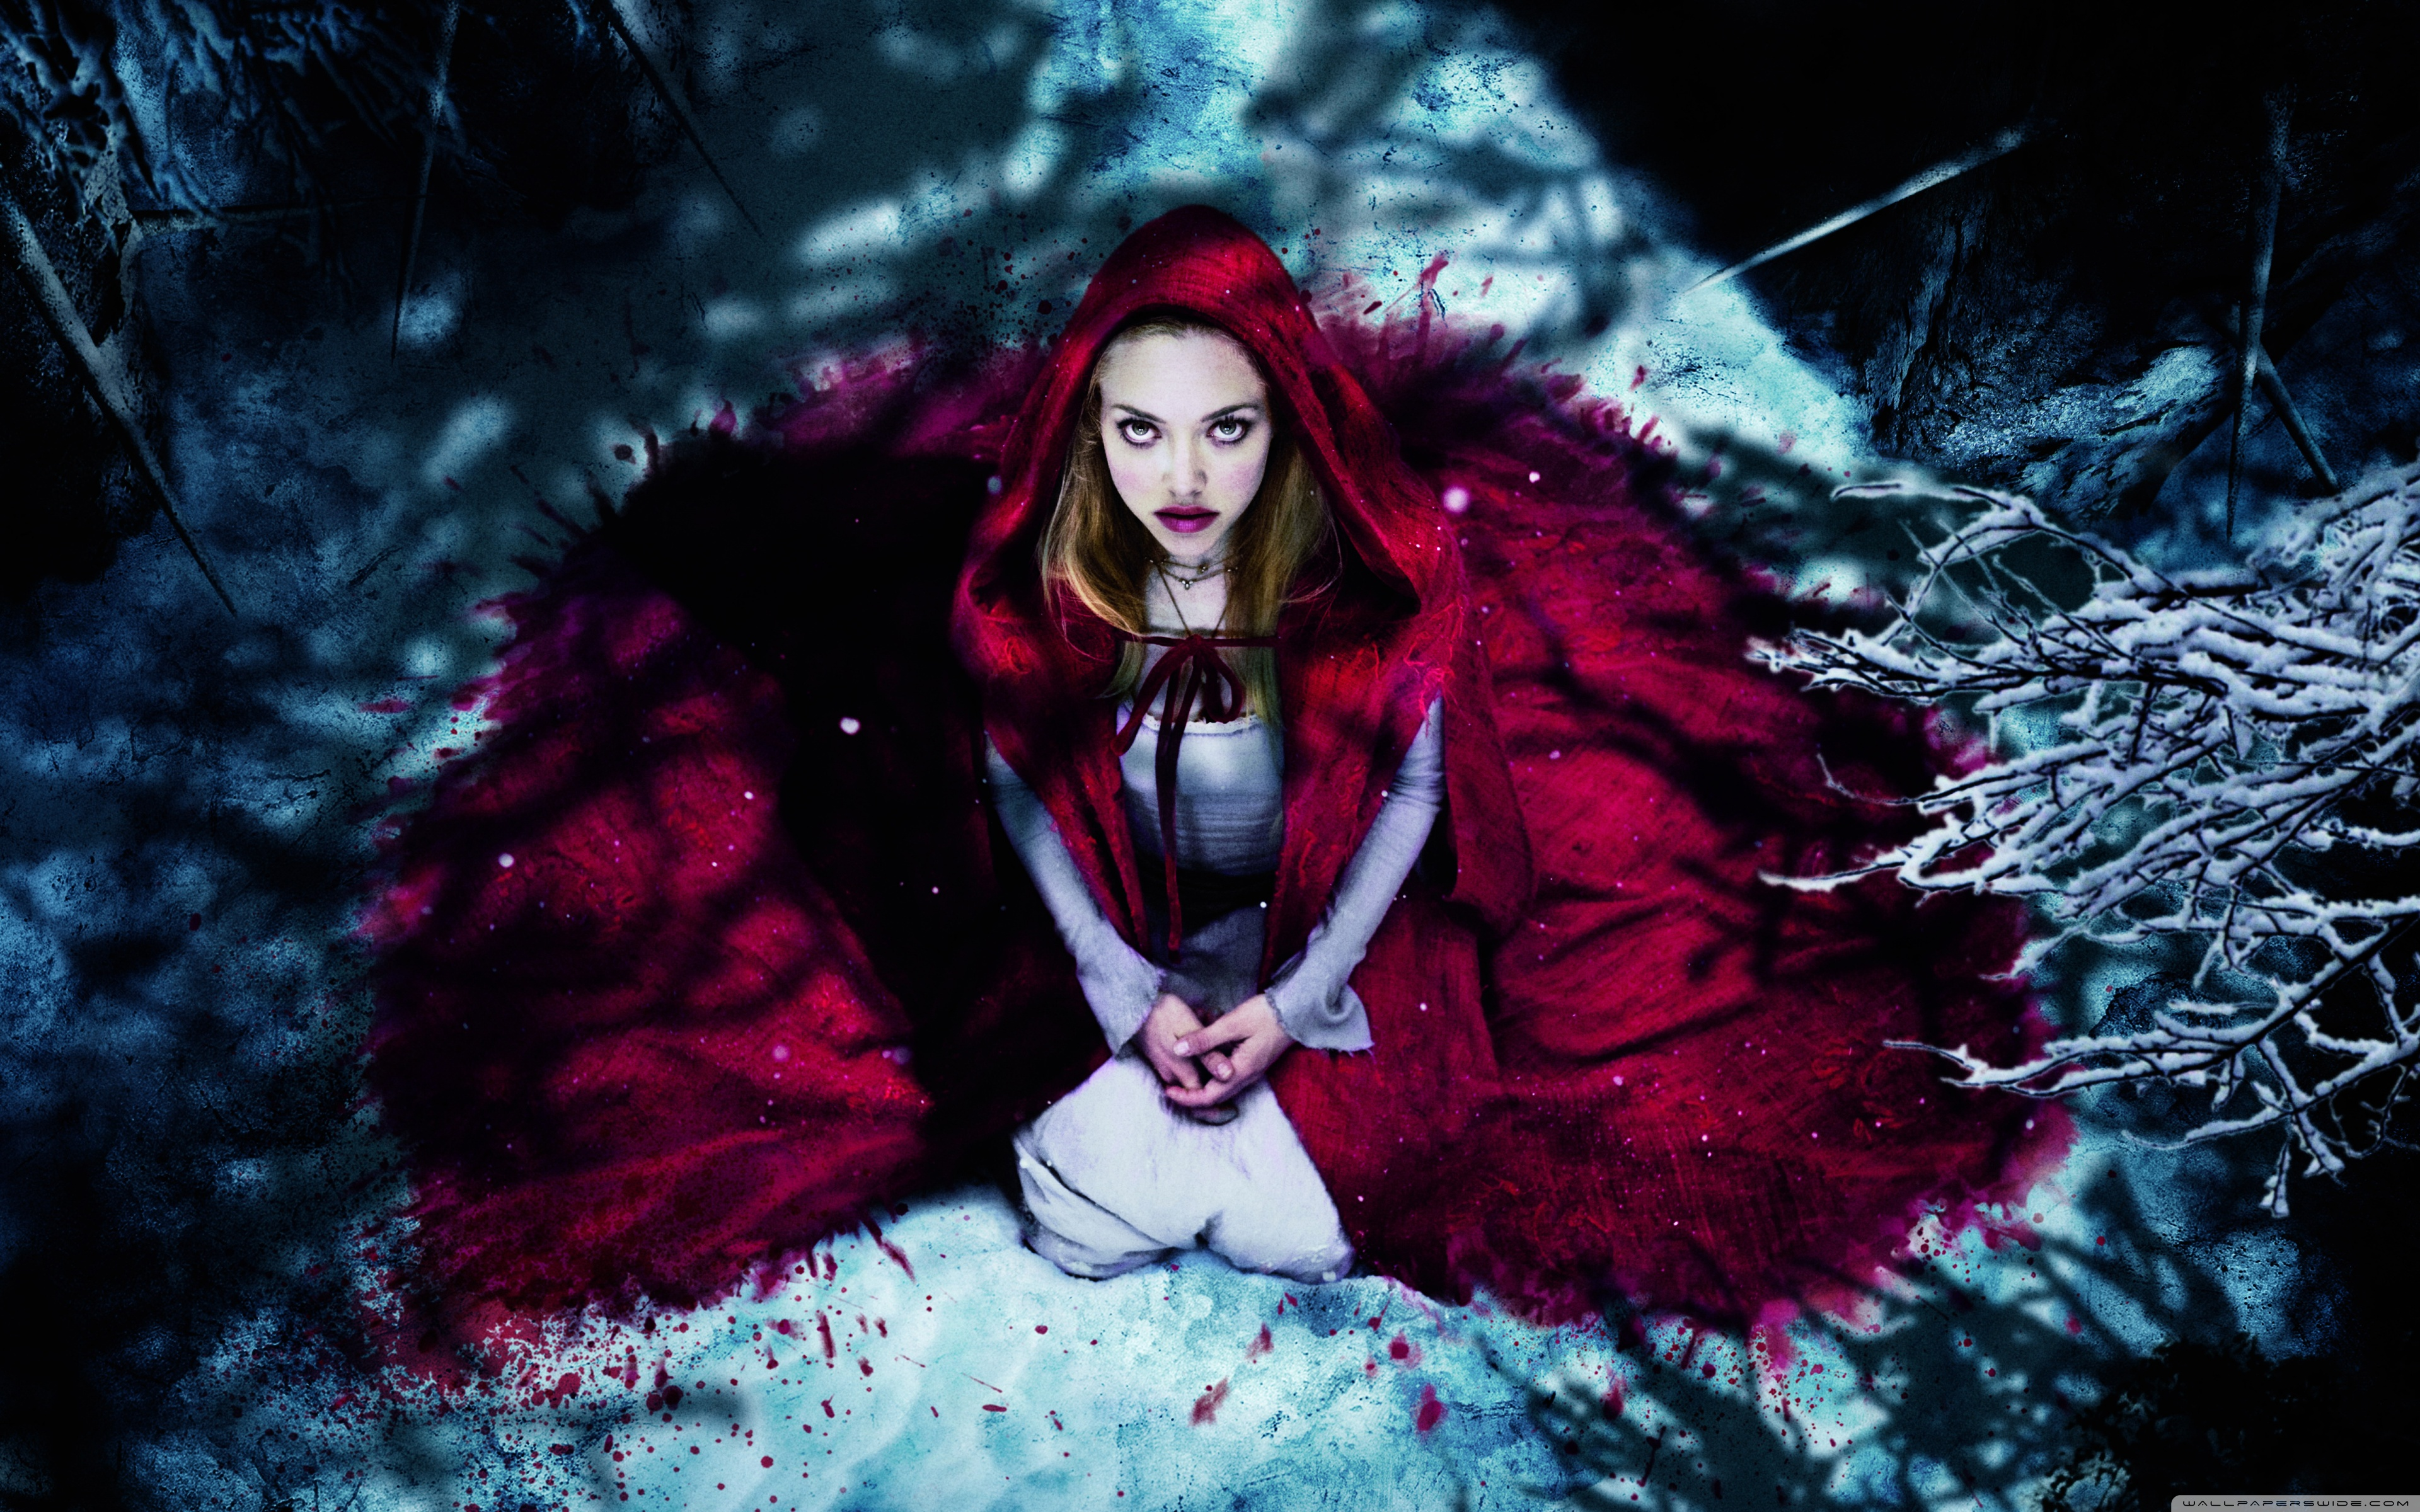 Red Riding Hood Poster 2568341 Hd Wallpaper Backgrounds